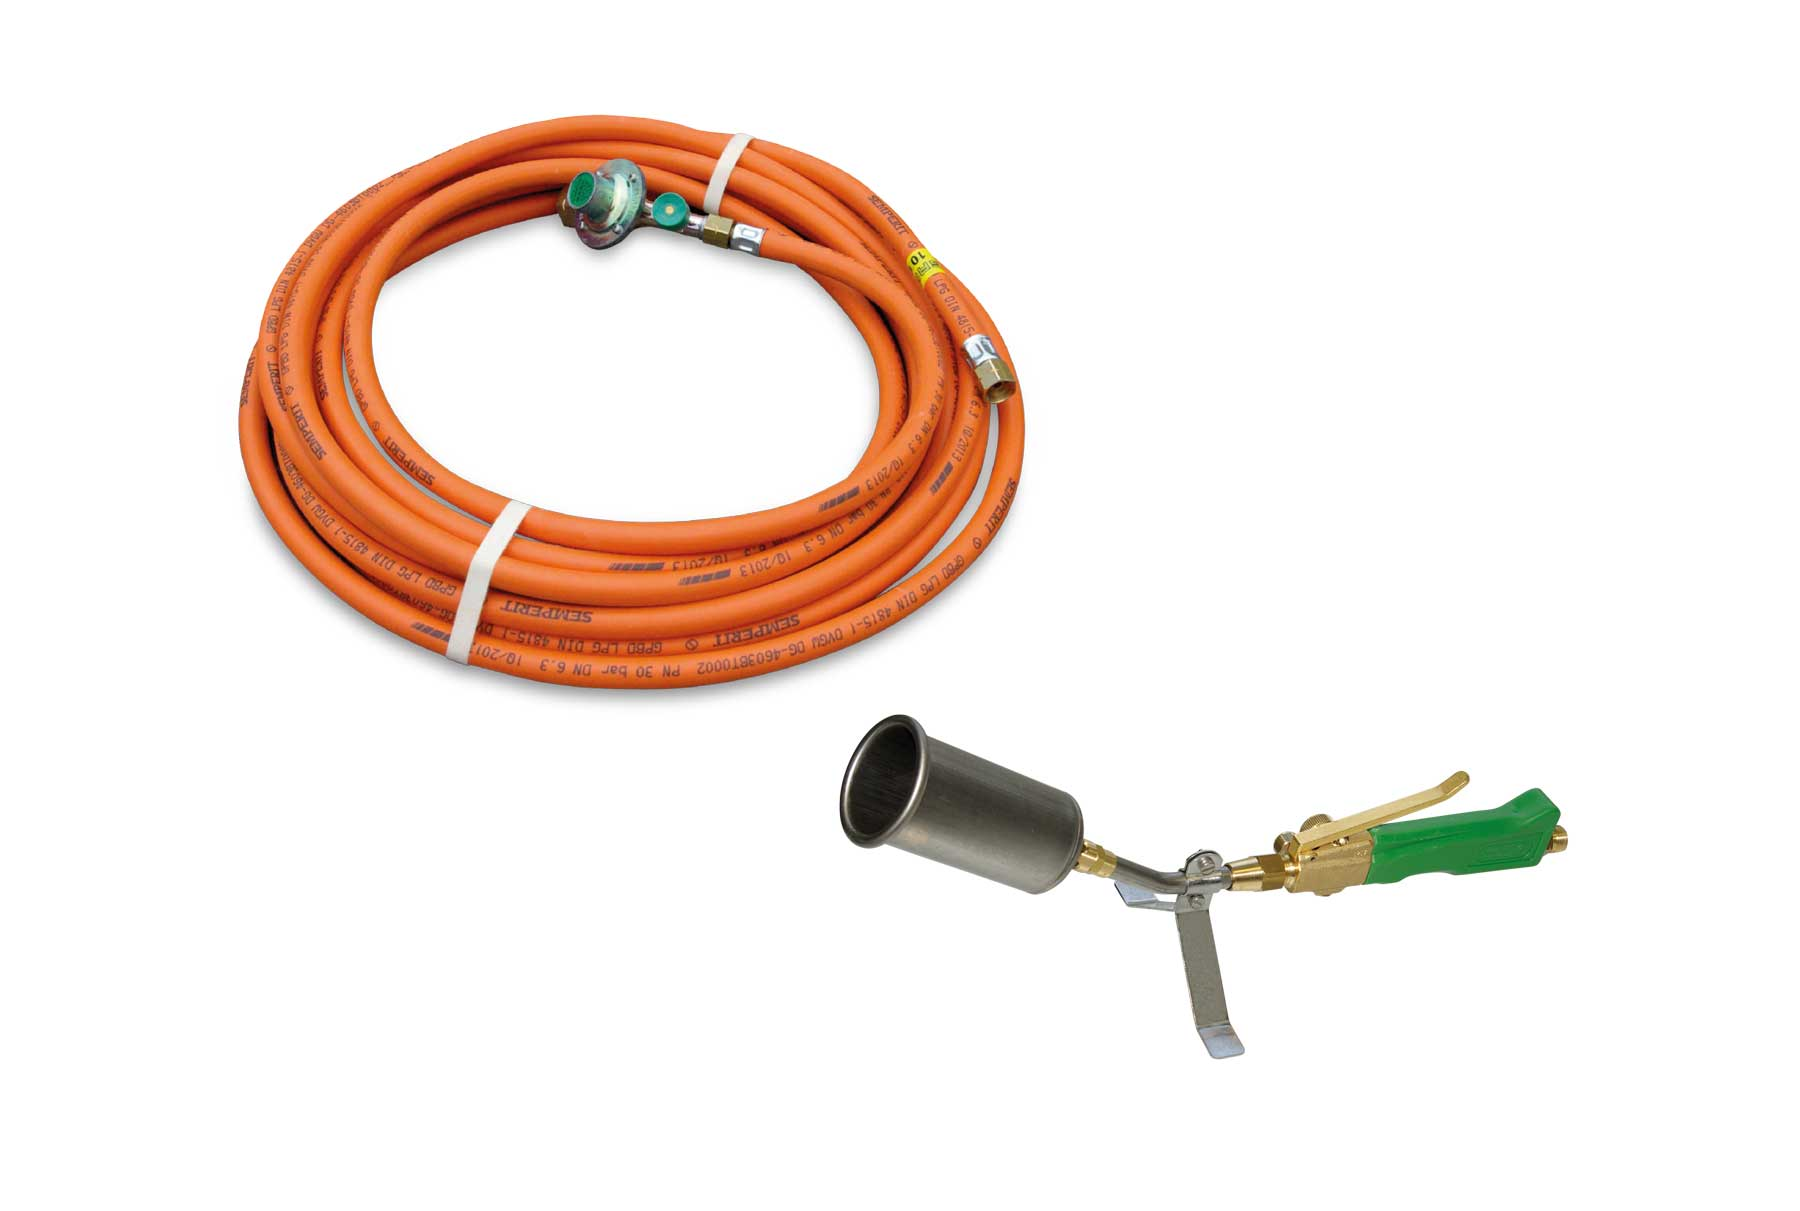 Titan TA 55 Anwärmbrenner mit 10 m HD-Schlauch / Titanium burner for pre-heating TA 55 with 10 m high pressure hose